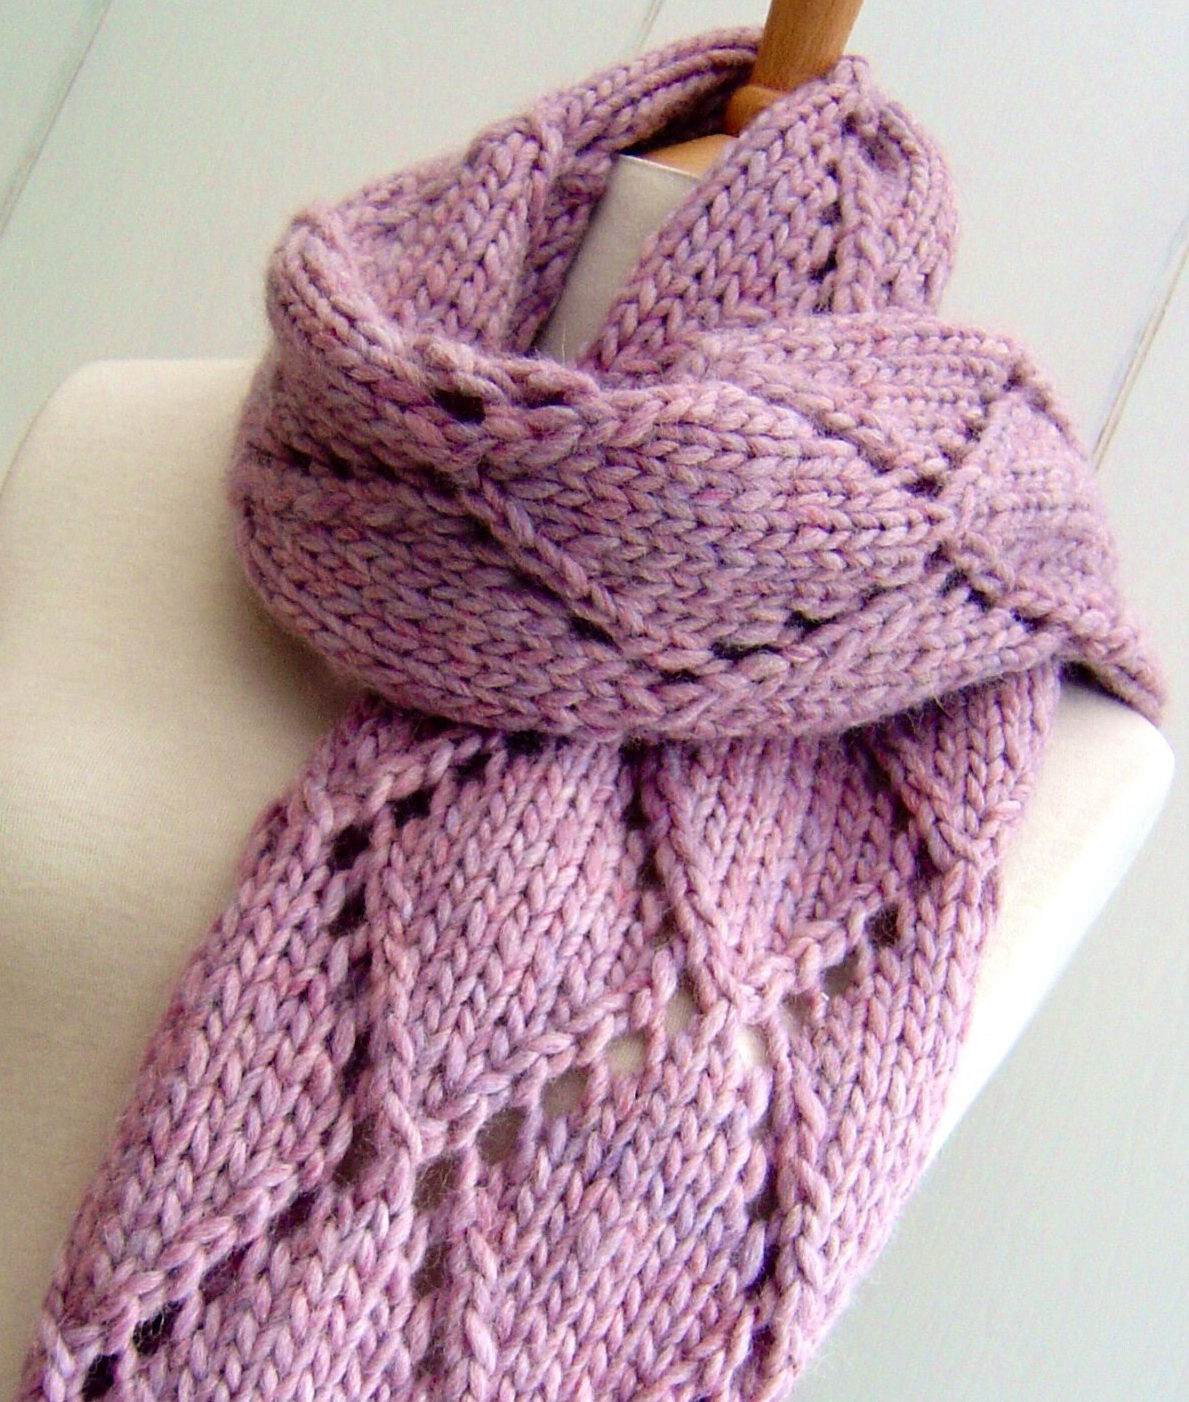 New Easy Scarf Knitting Patterns Knitting Ideas Of Superb 43 Images Knitting Ideas